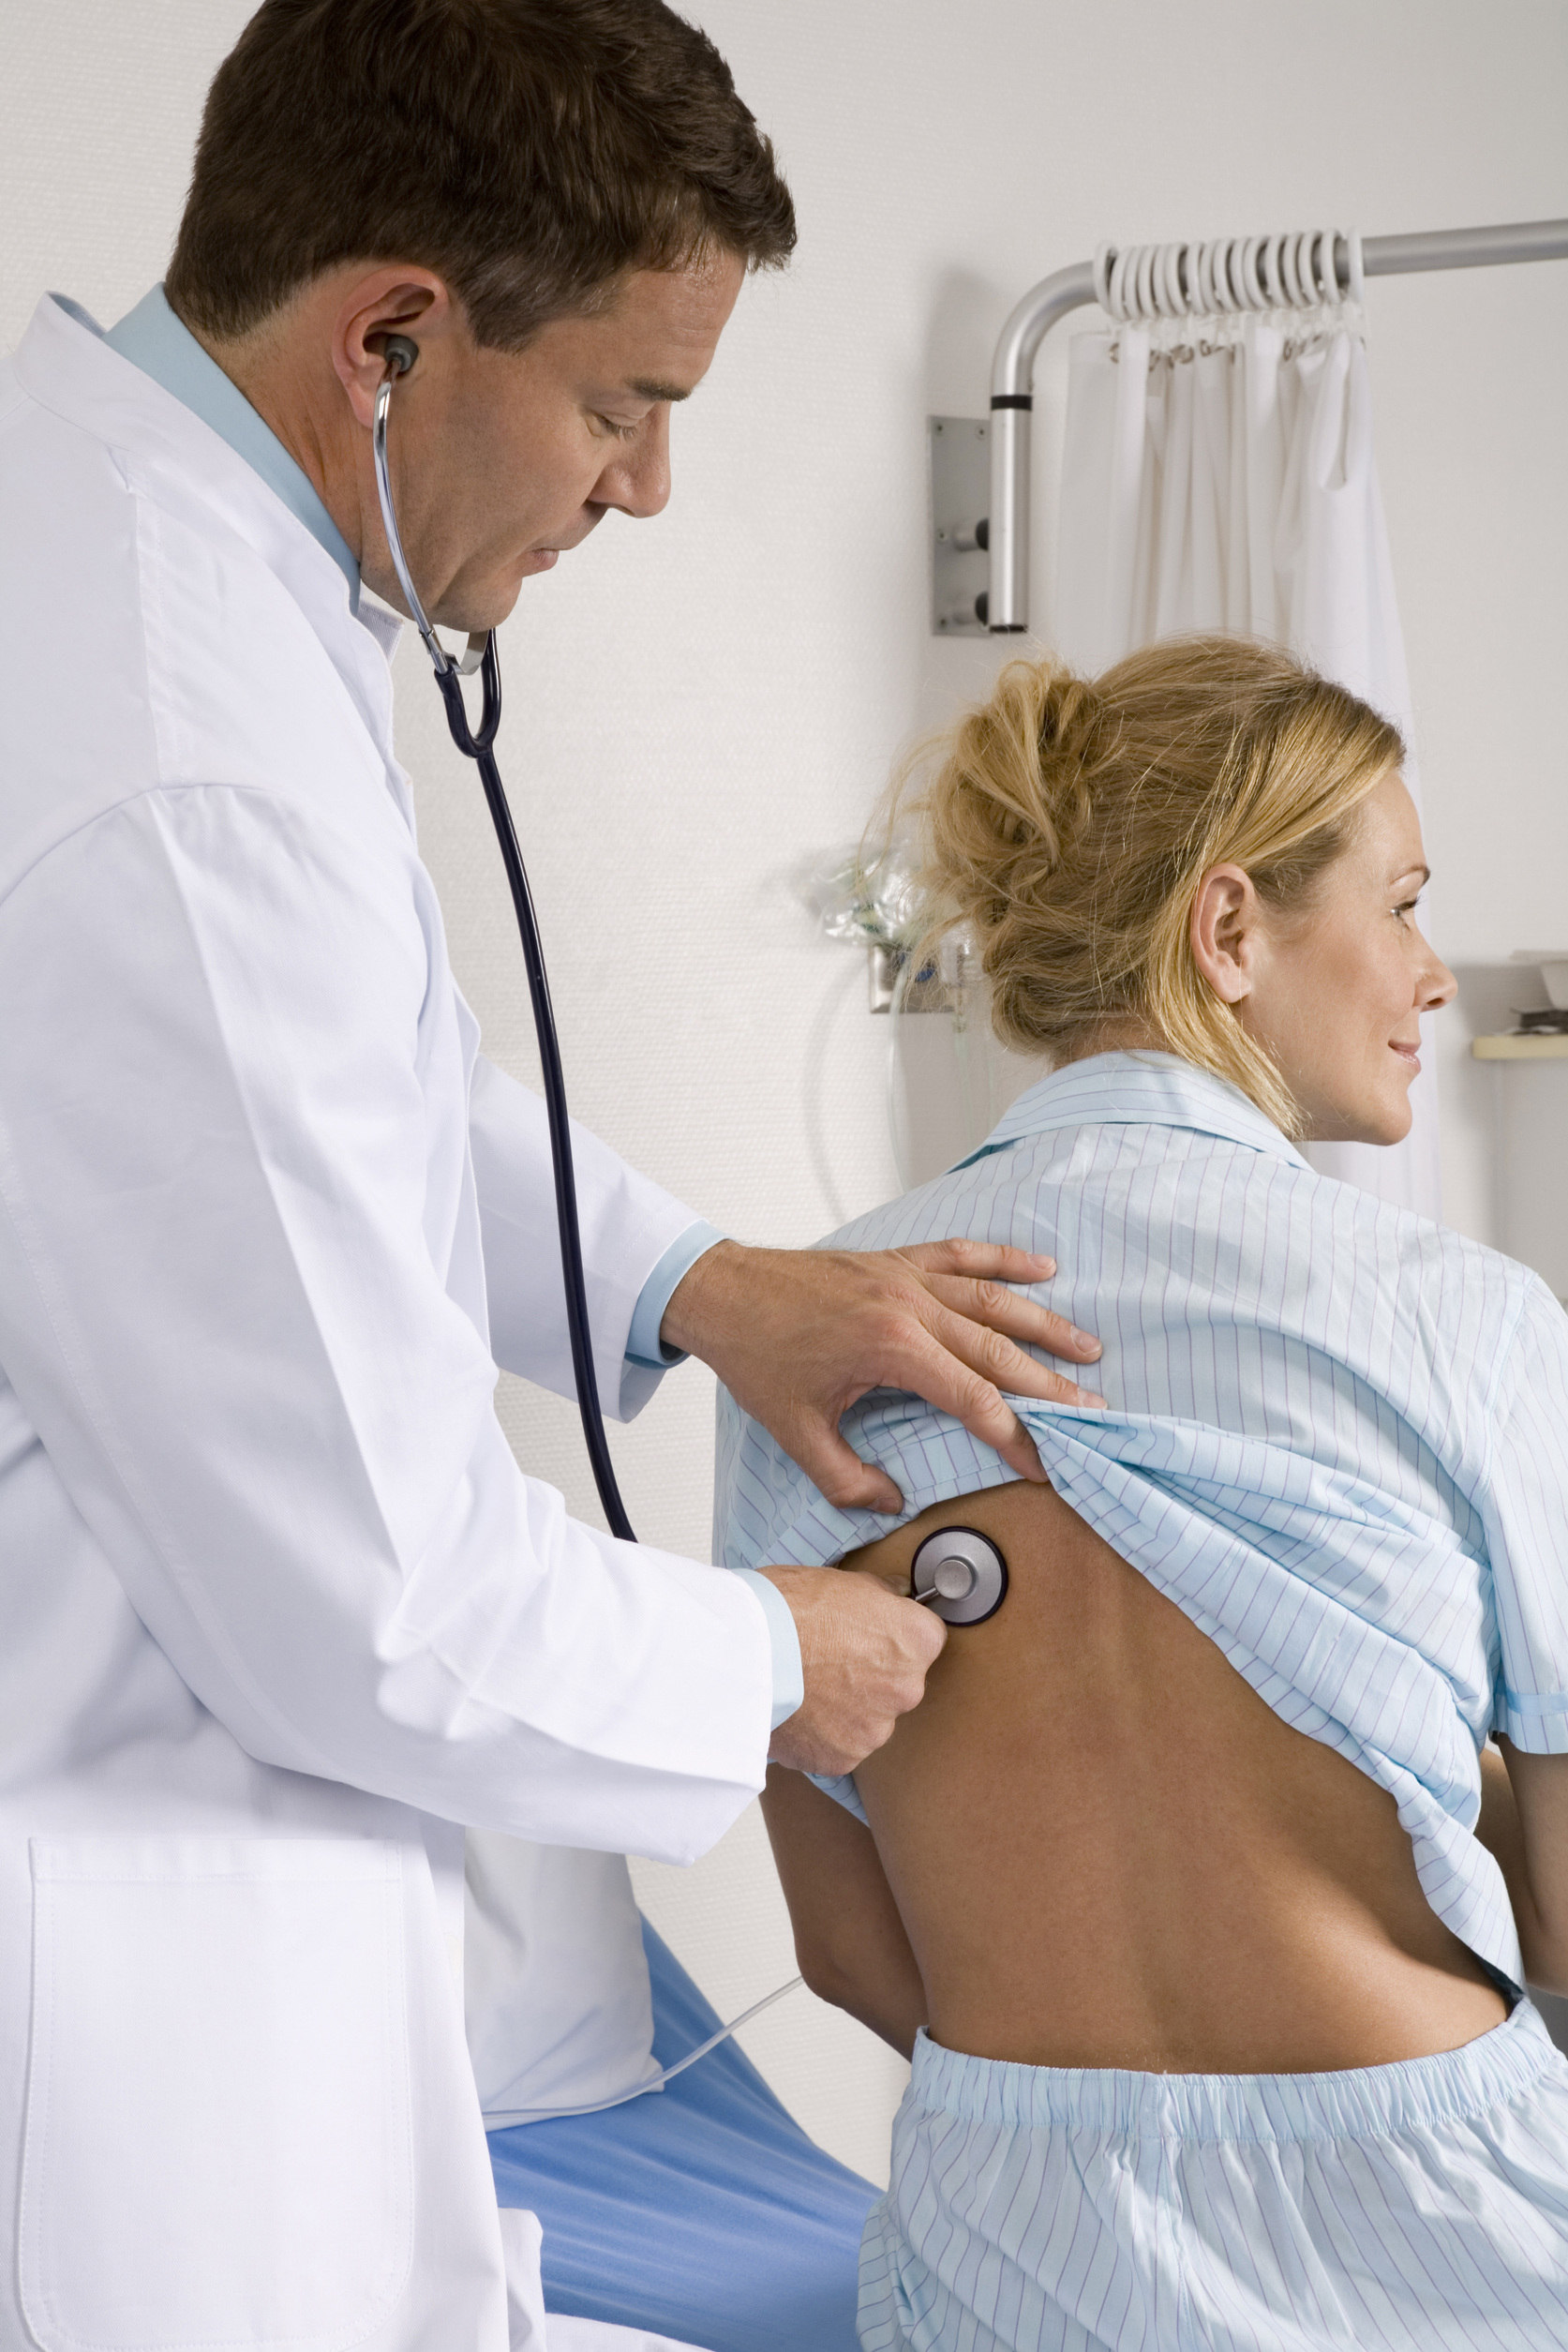 Unguento in una farmacia da thrombophlebitis